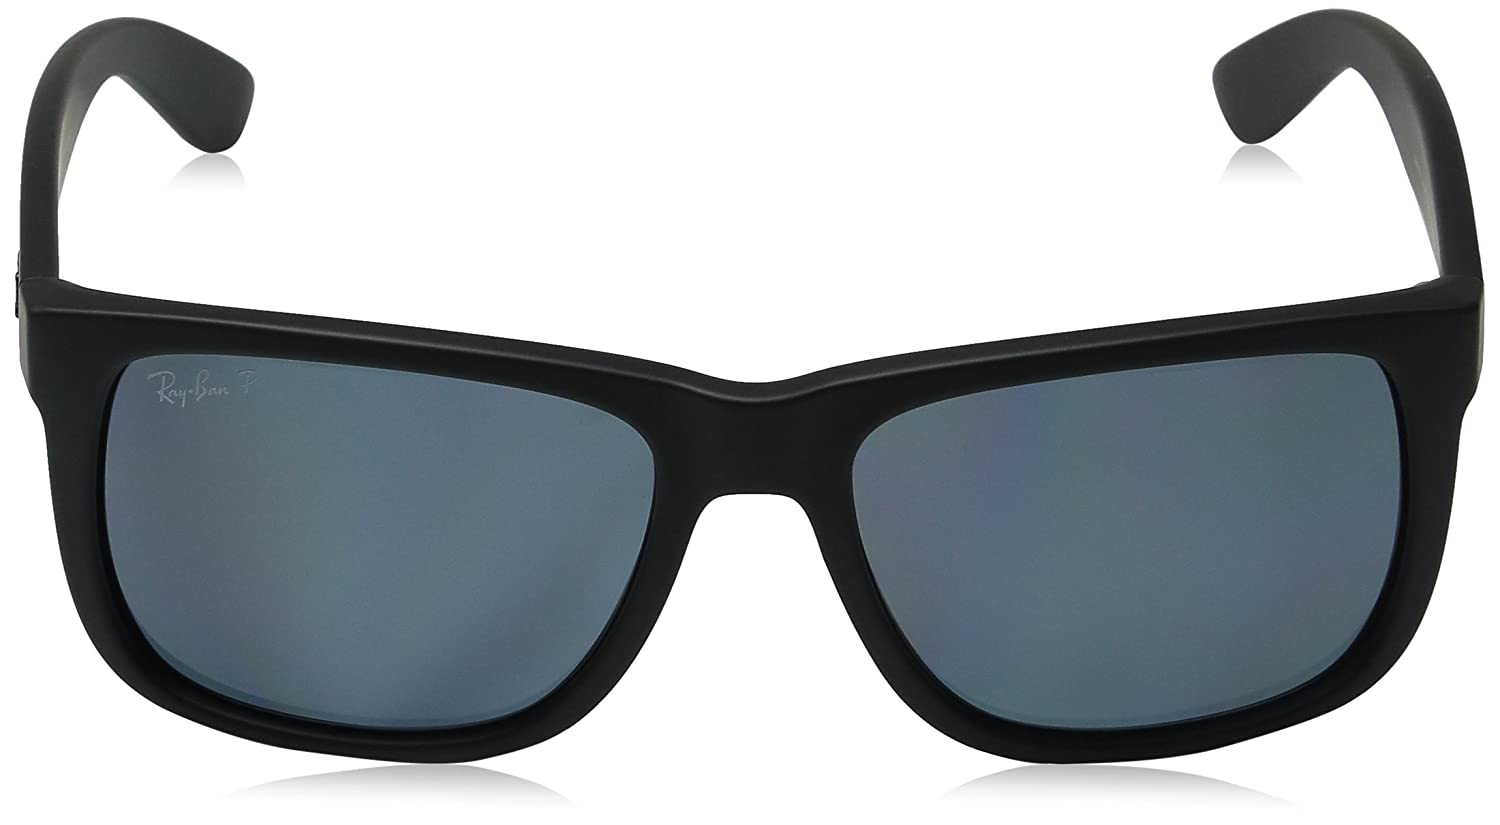 30f895ec93a Ray-Ban UV Protected Round Men s Sunglasses (0RB4165622 2V55